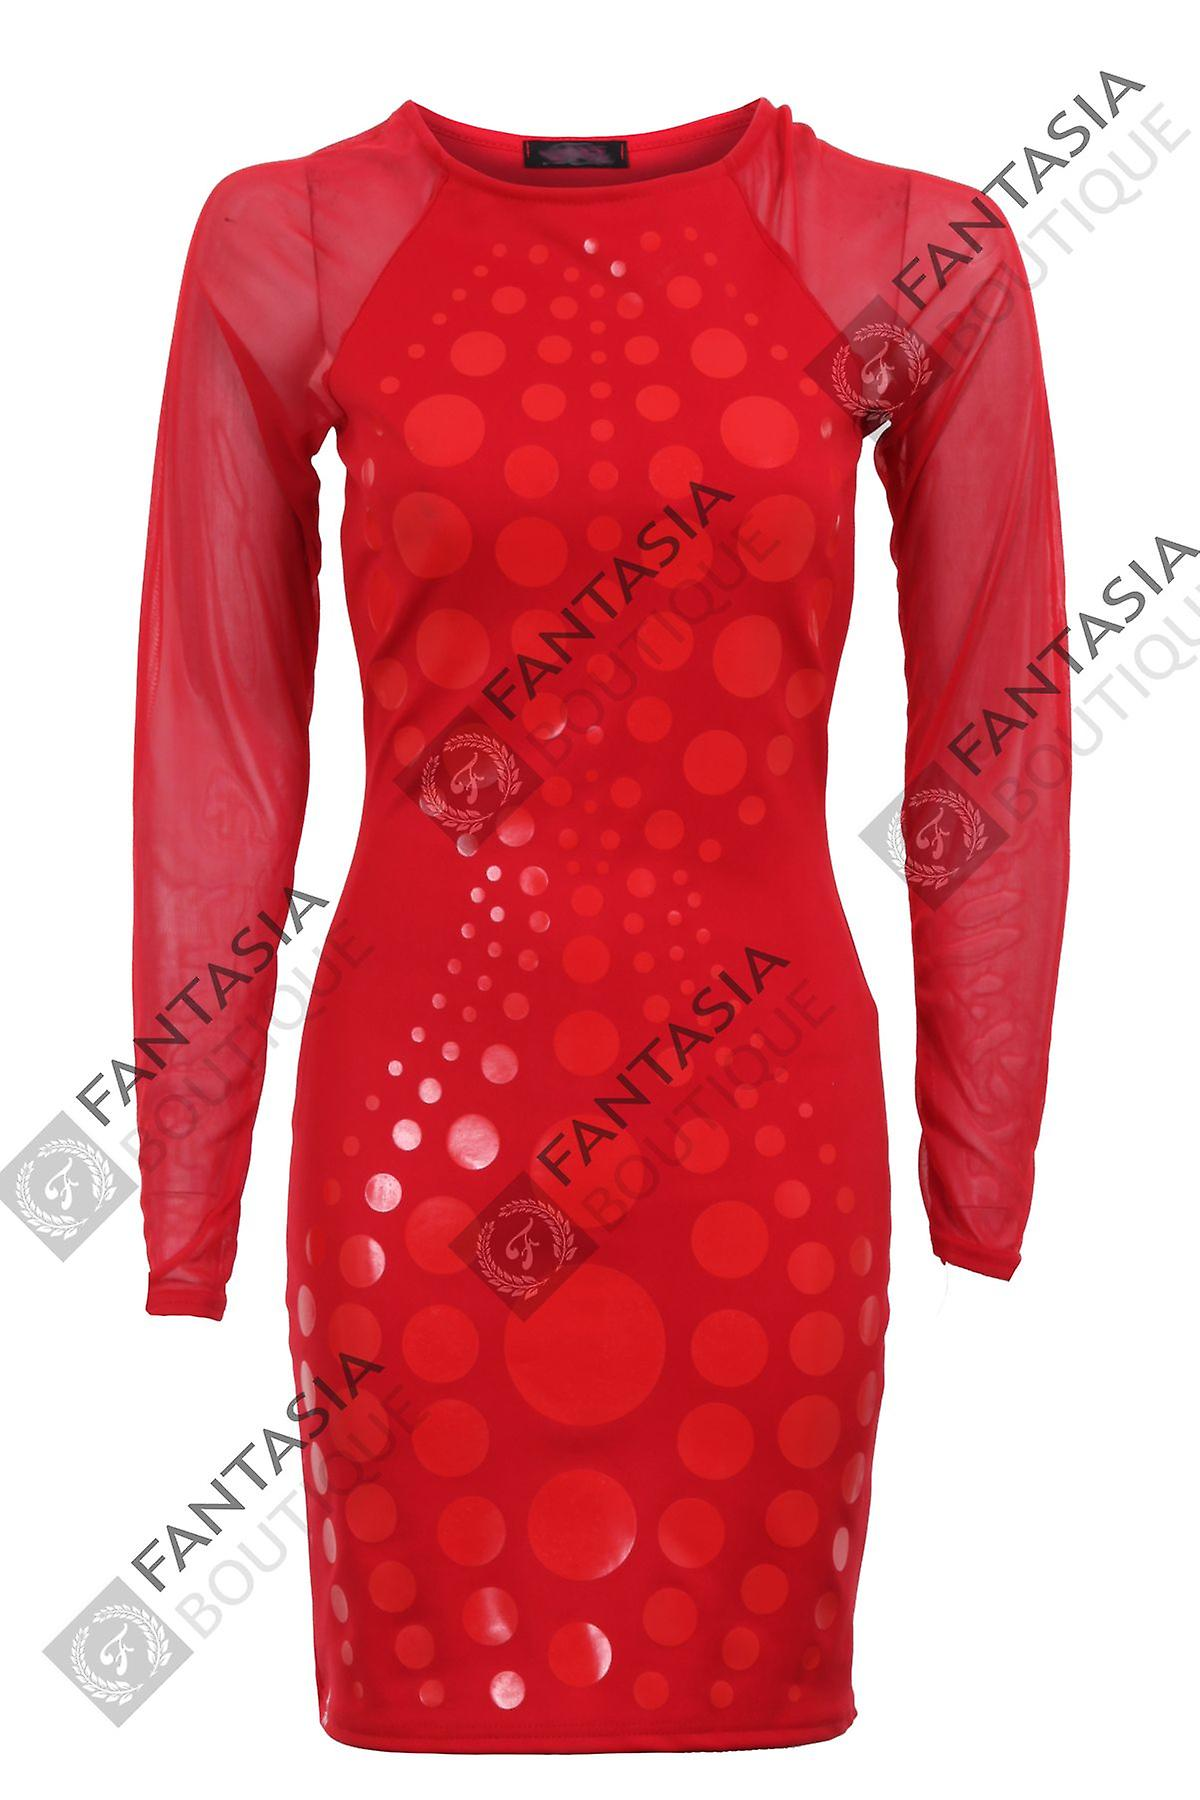 New Ladies Sheer Long Full Sleeve Spotted Polka Dot Stretch Womens Bodycon Dress